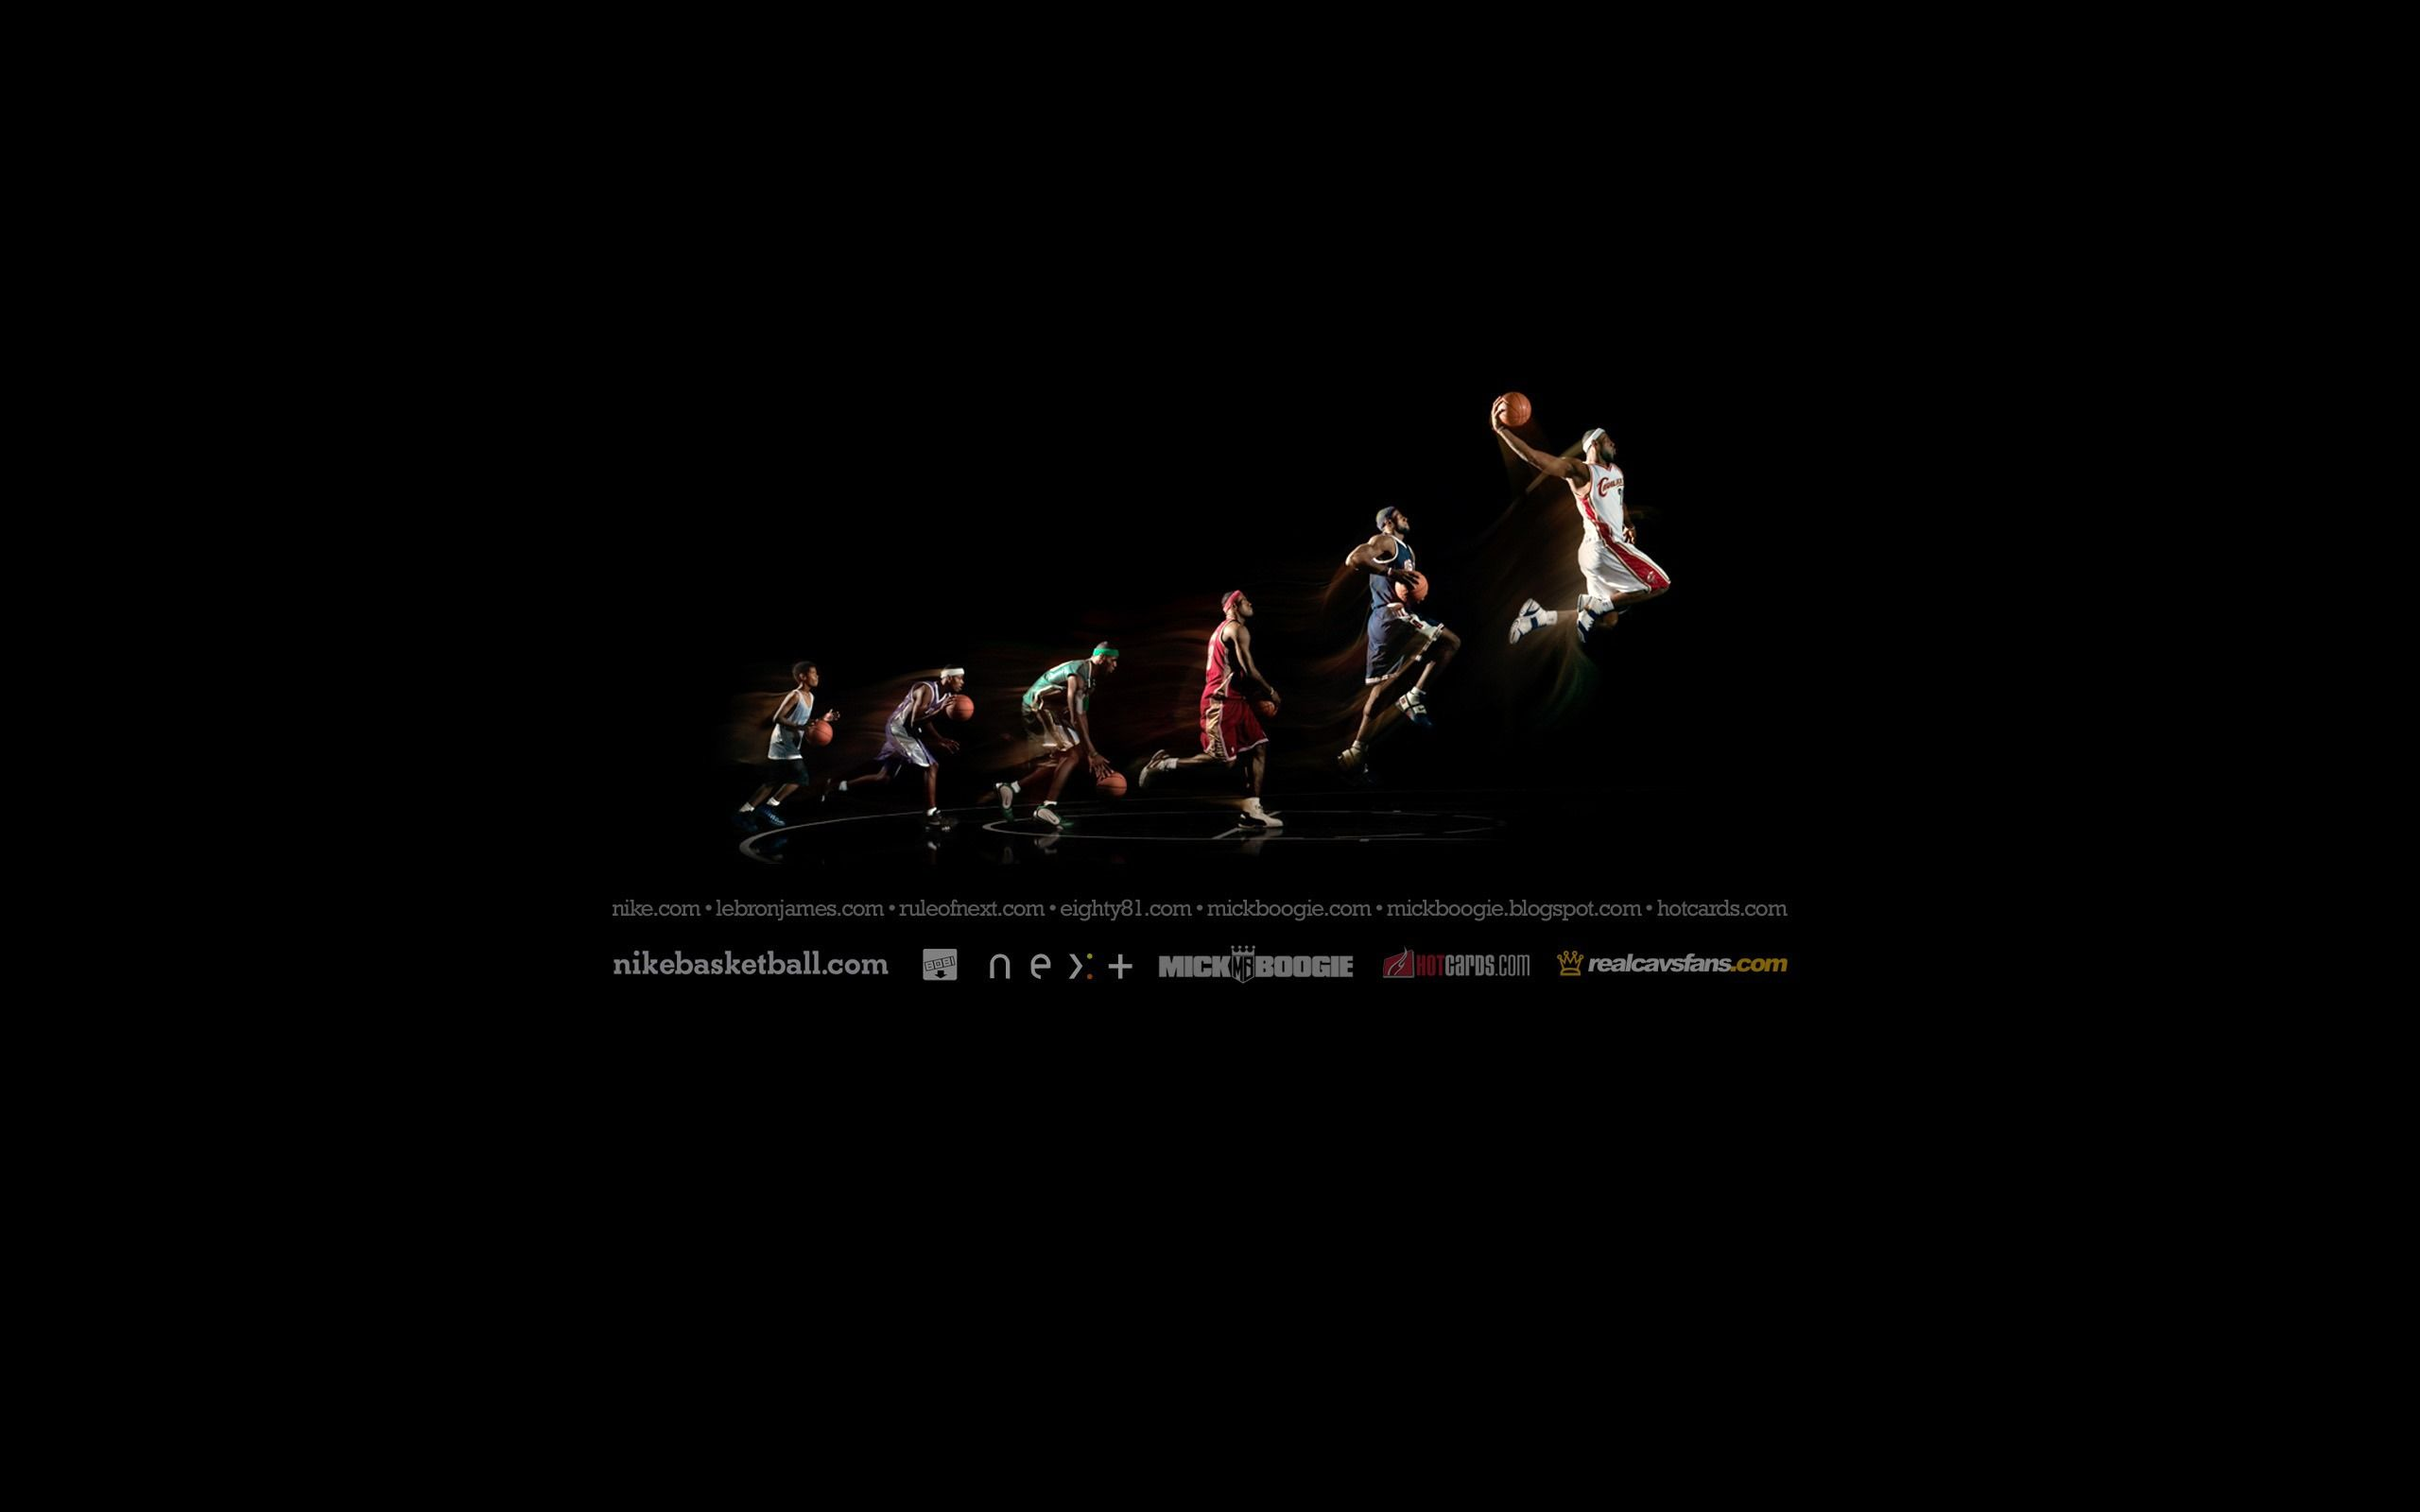 Basketball Wallpapers LVB.